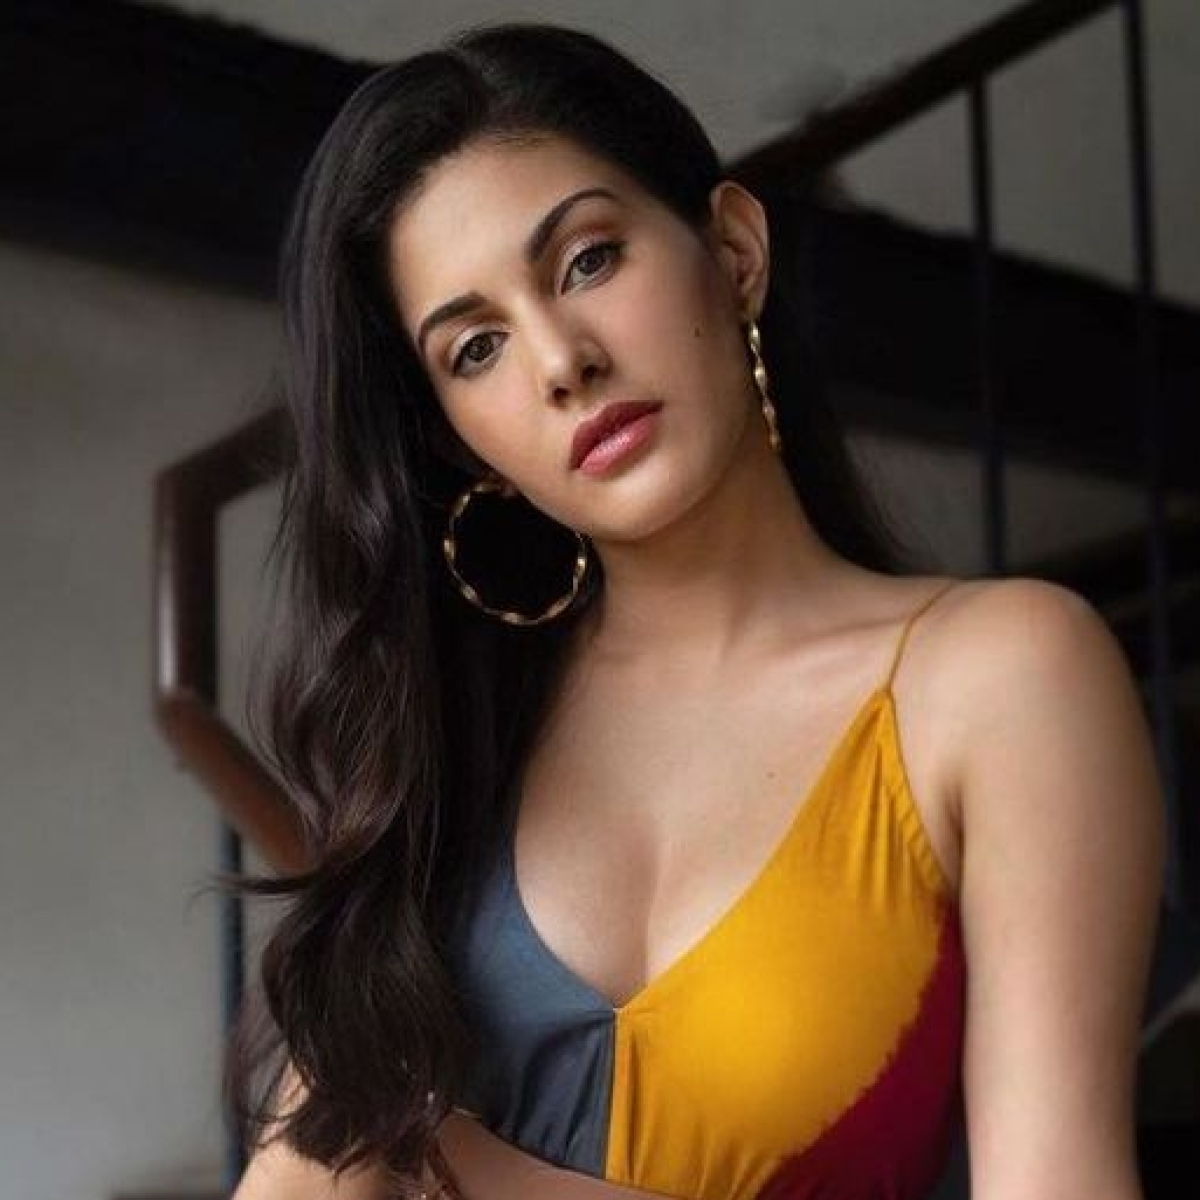 'Greedy for fame': Amyra Dastur trolled for sharing screenshots of helping people amid COVID-19 crisis